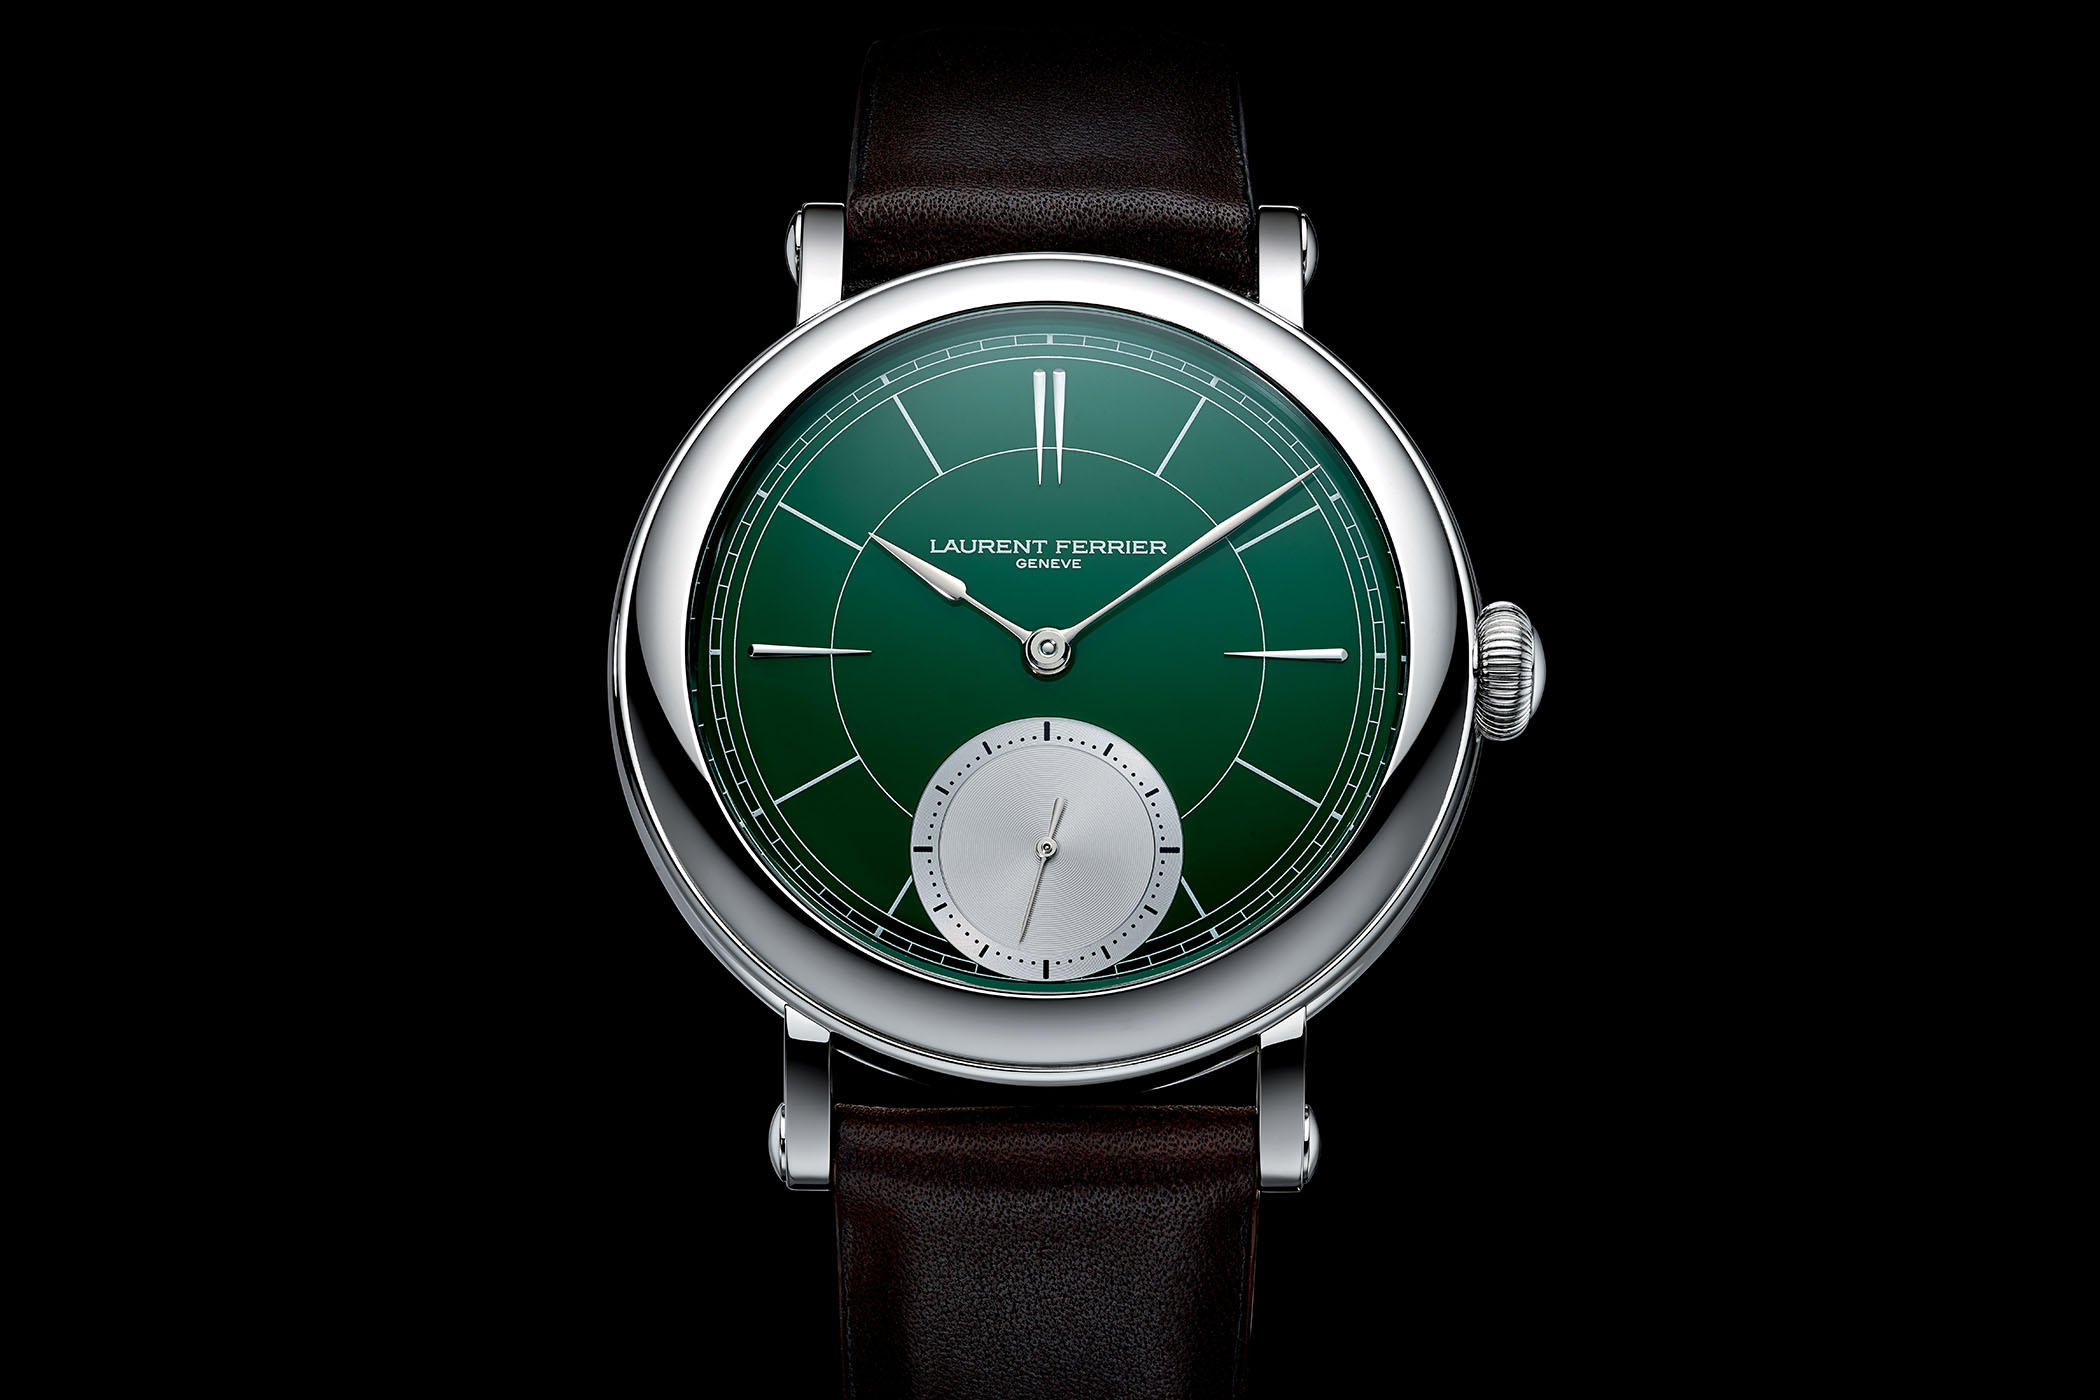 Laurent Ferrier Galet Micro Rotor Montre Ecole British Racing Green